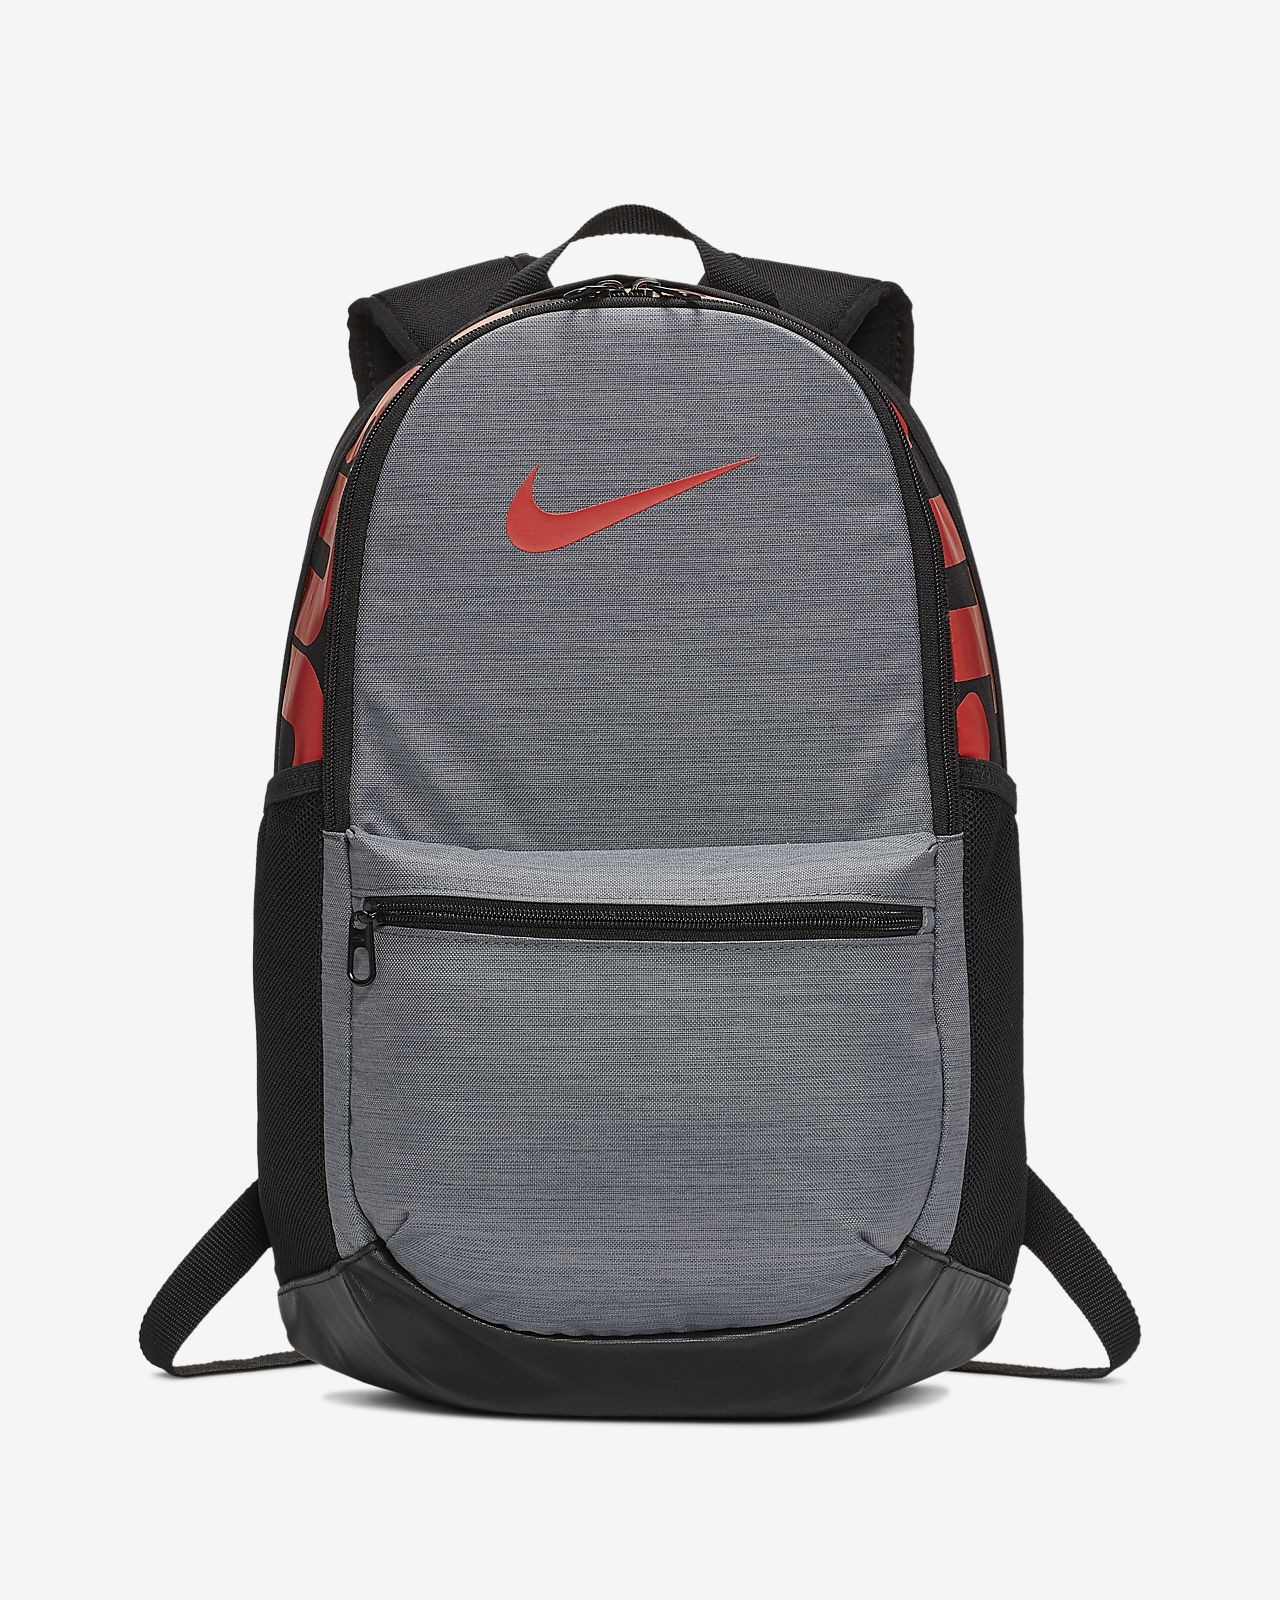 aaf8e27114b051 Nike Brasilia (Medium) Training Backpack. Nike.com